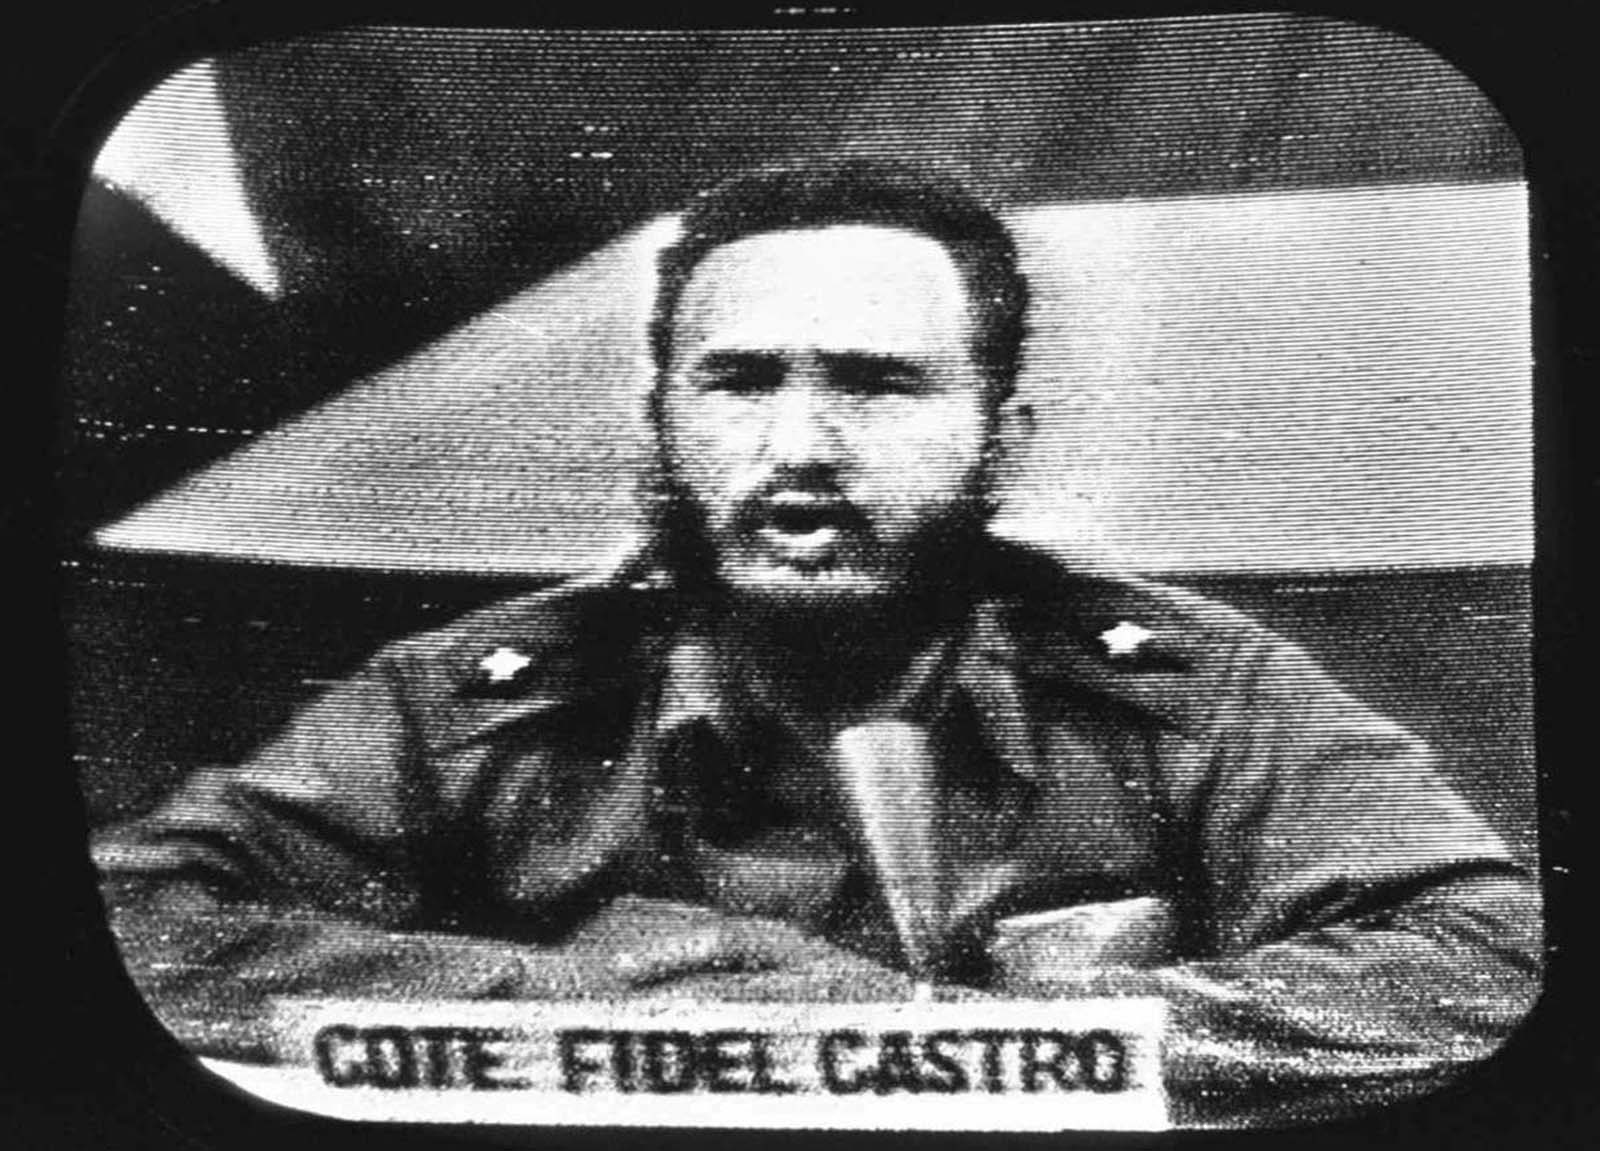 Cuban President Fidel Castro replies to President Kennedy's naval blockade via Cuban radio and television, on October 23, 1962.